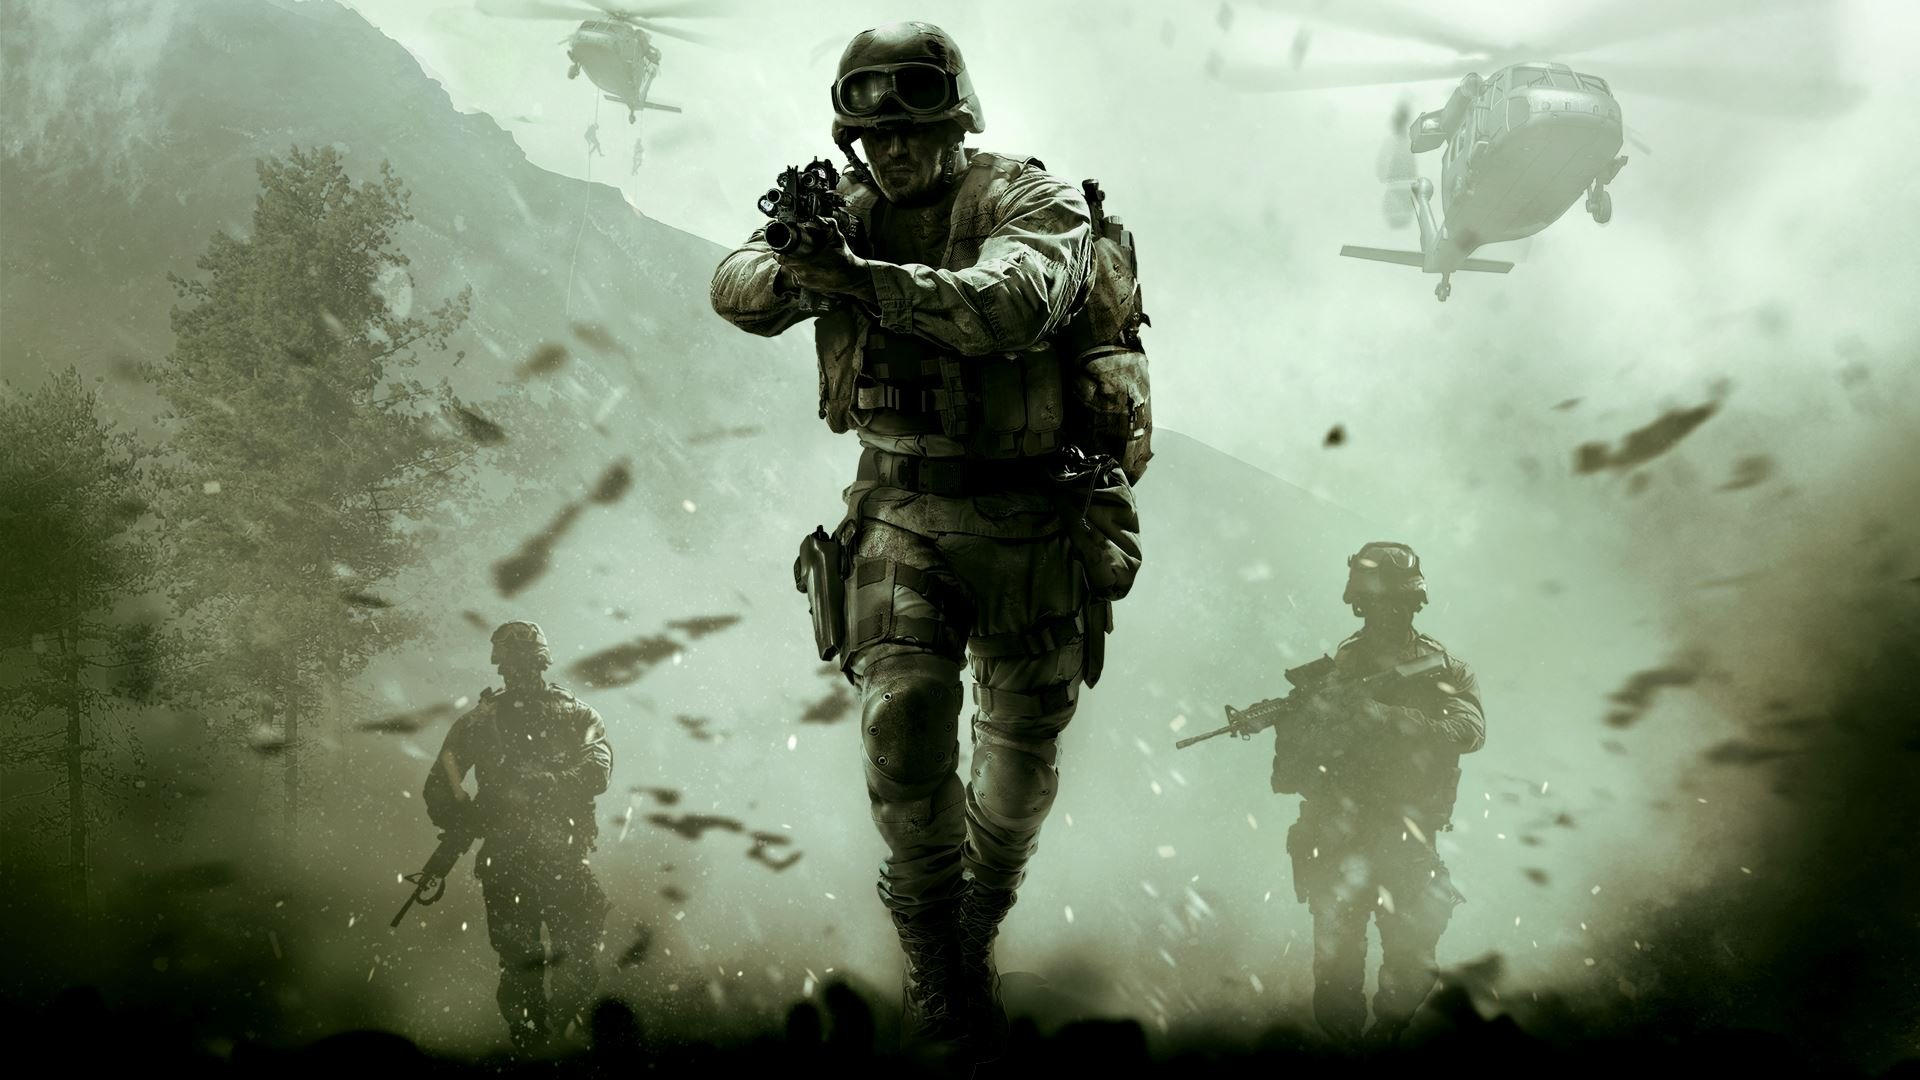 The Call of Duty Endowment program announces that it's placed 54,000 veterans into careers screenshot